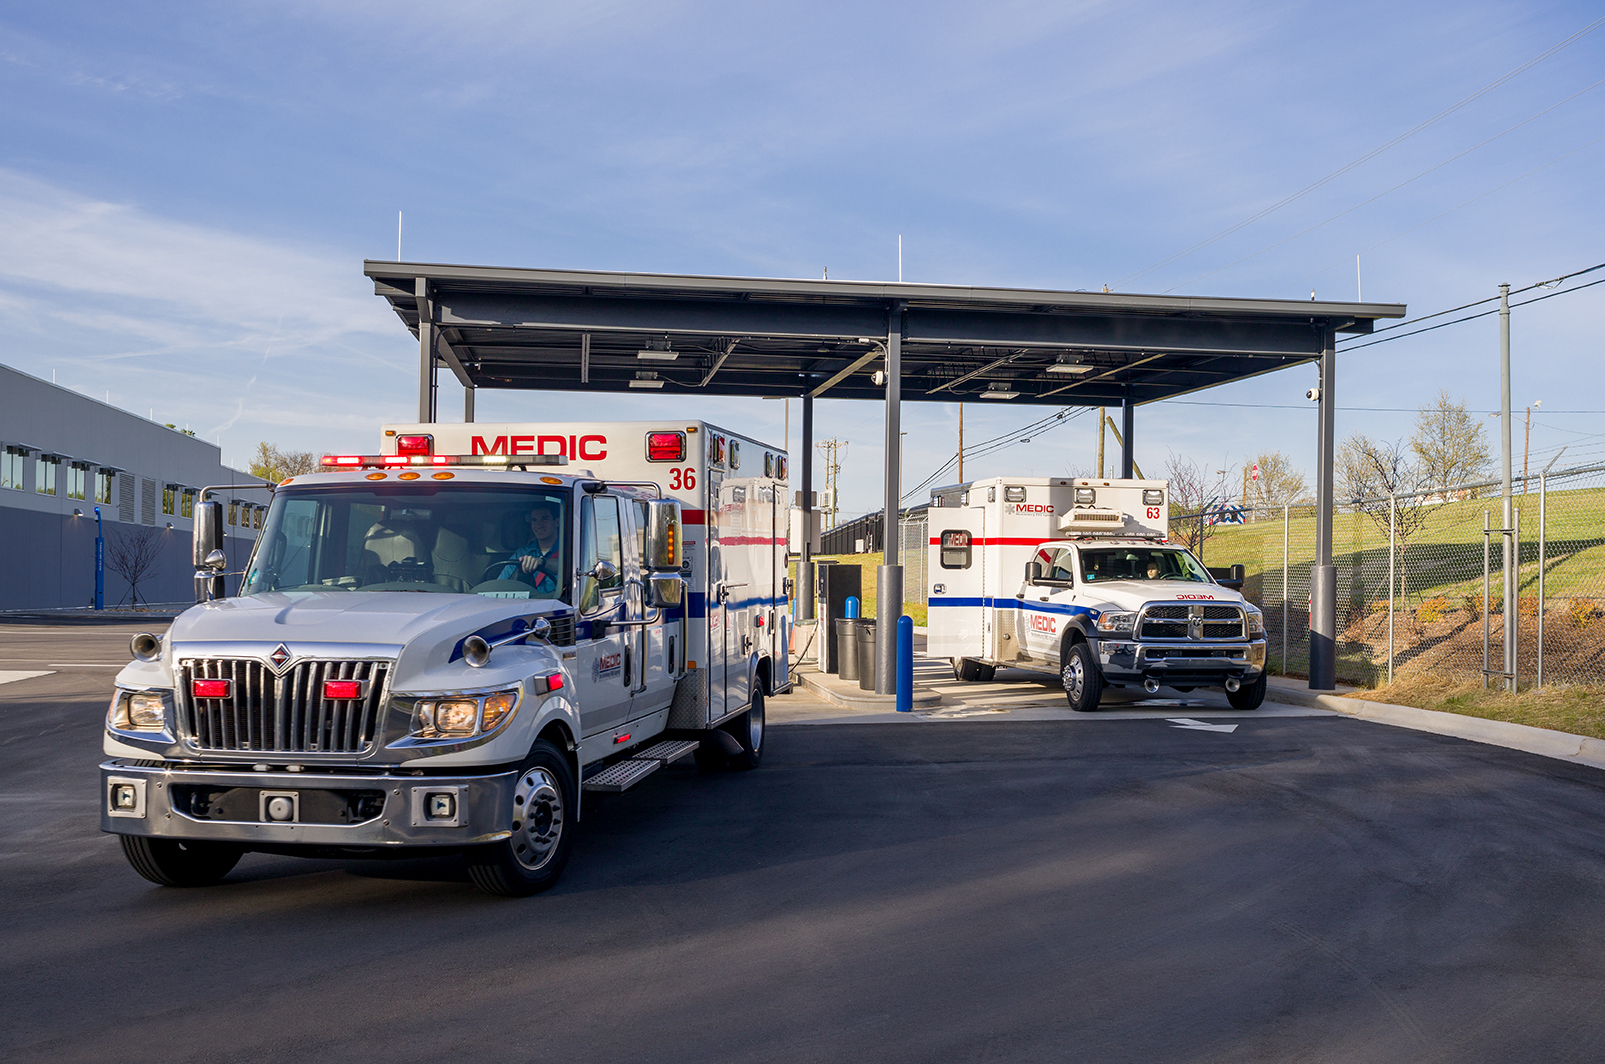 ADW-Public-Safety-MEDIC-Headquarters-Charlotte-NC-Fueling.jpg